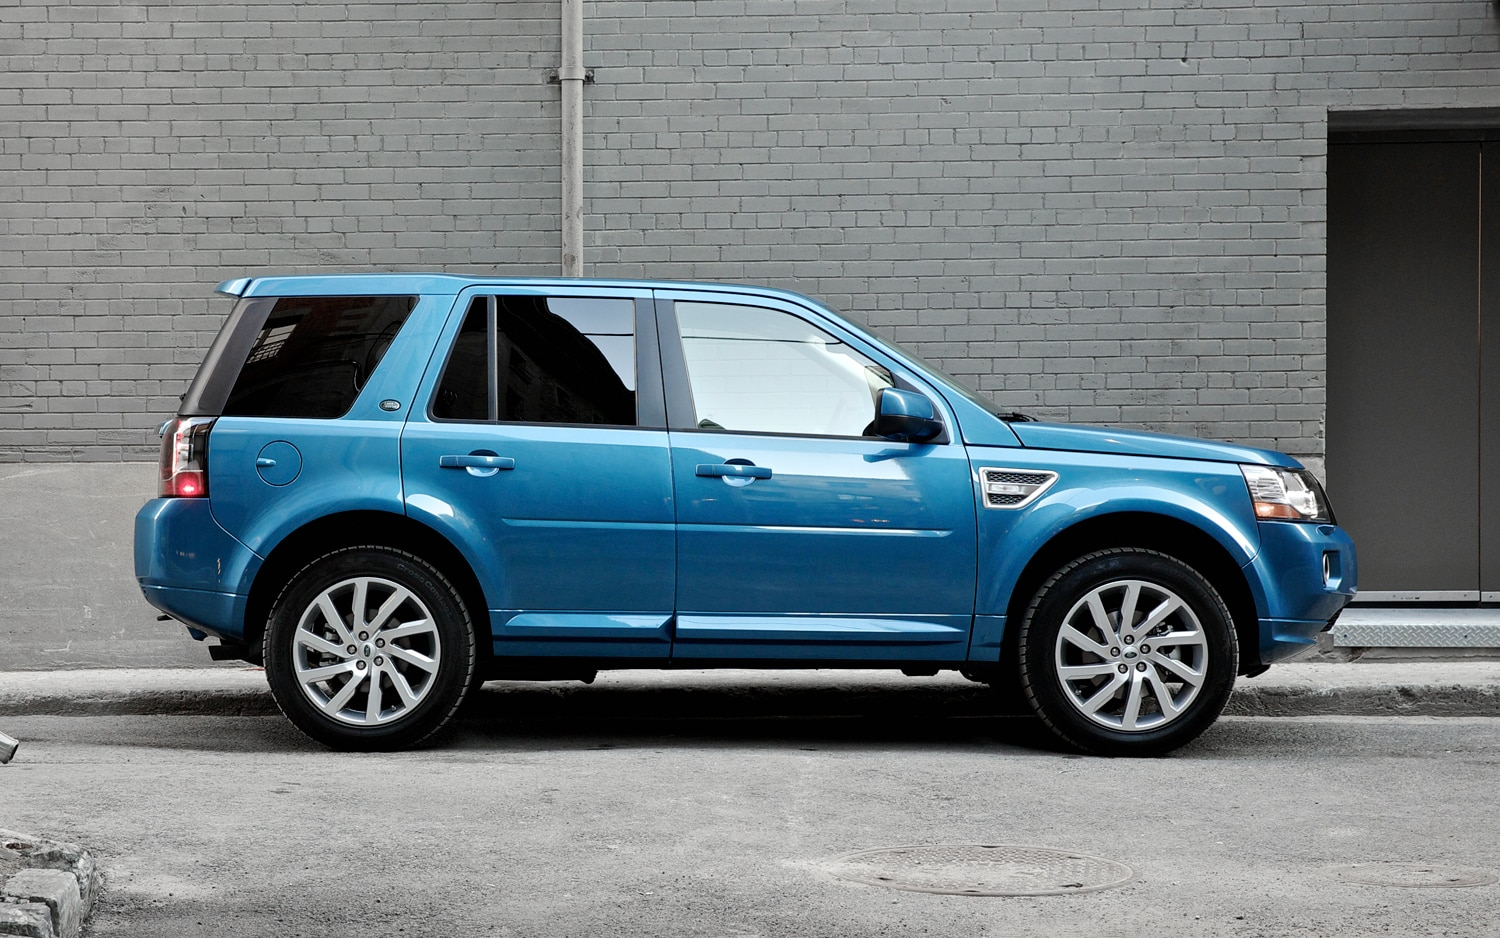 2013 Land Rover LR2 Side Profile